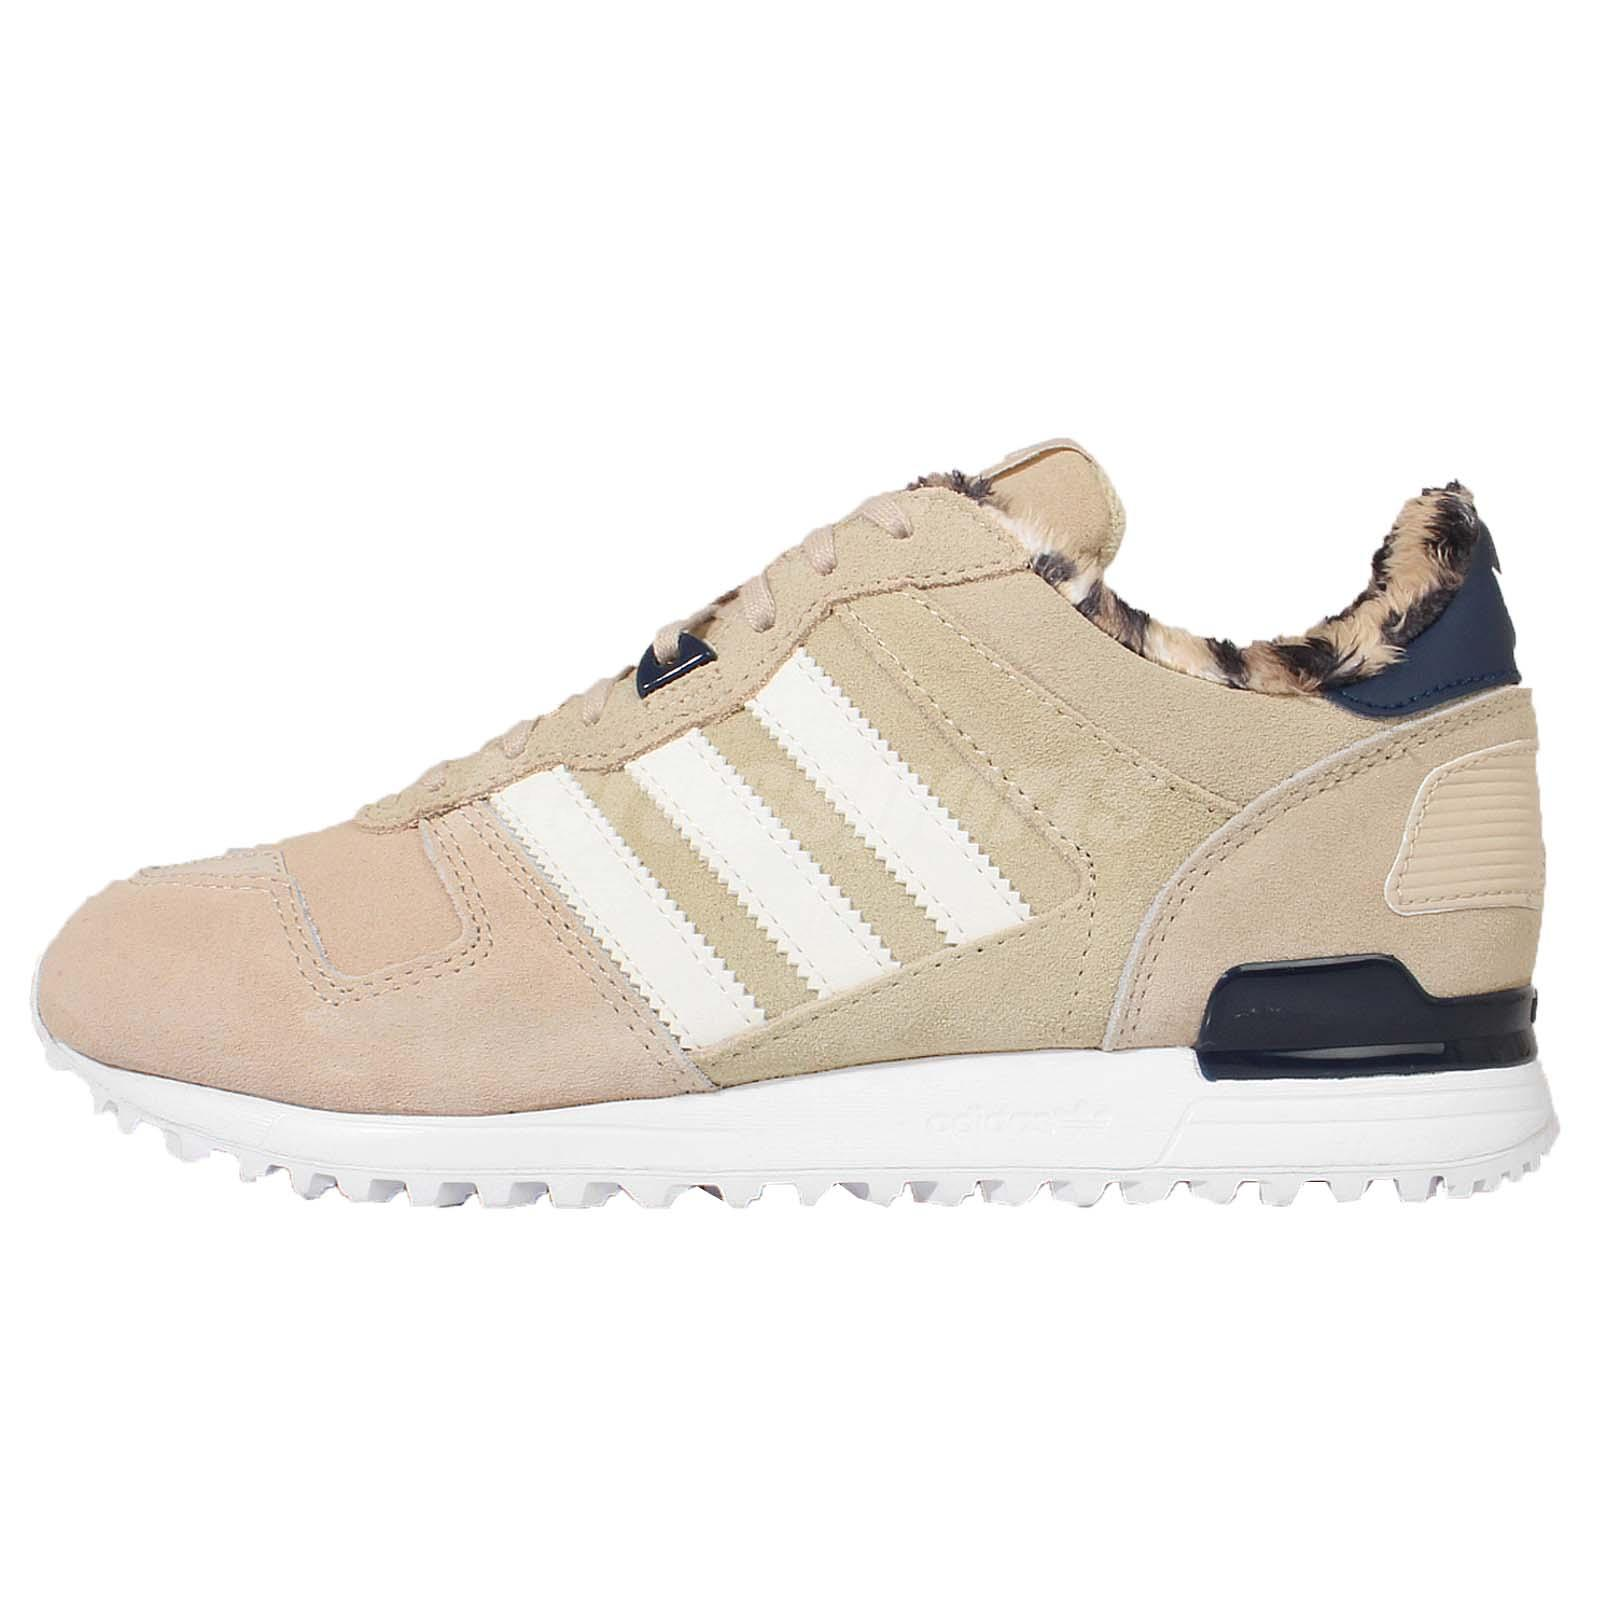 adidas Originals ZX 700 W Beige Leopard Womens Casual Shoes Sneakers B25719